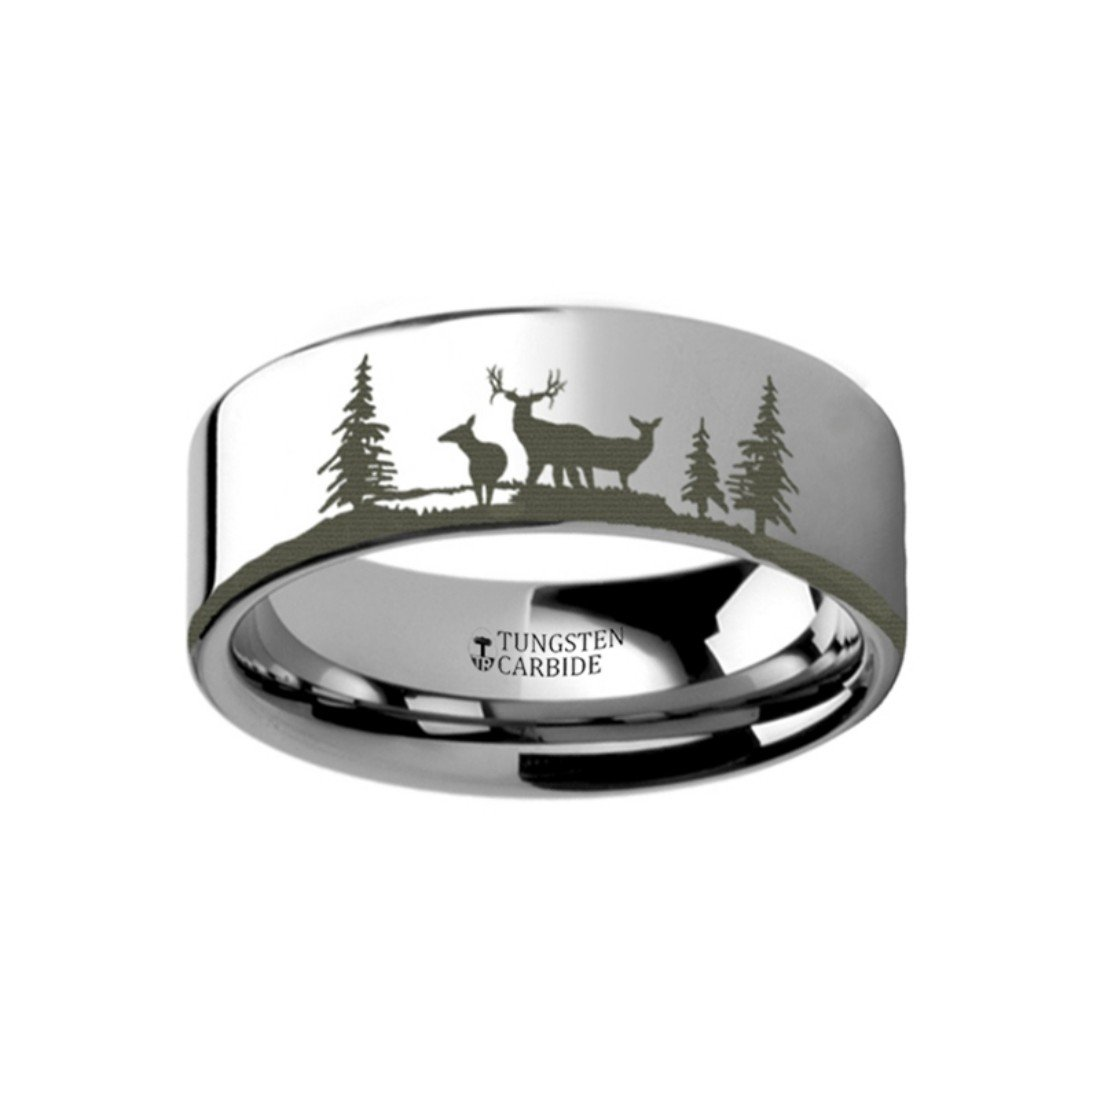 Thorsten Animal Nature Landscape Deer Stag with Two Doe Forest Ring Flat Tungsten Ring 6mm Wide Wedding Band from Roy Rose Jewelry